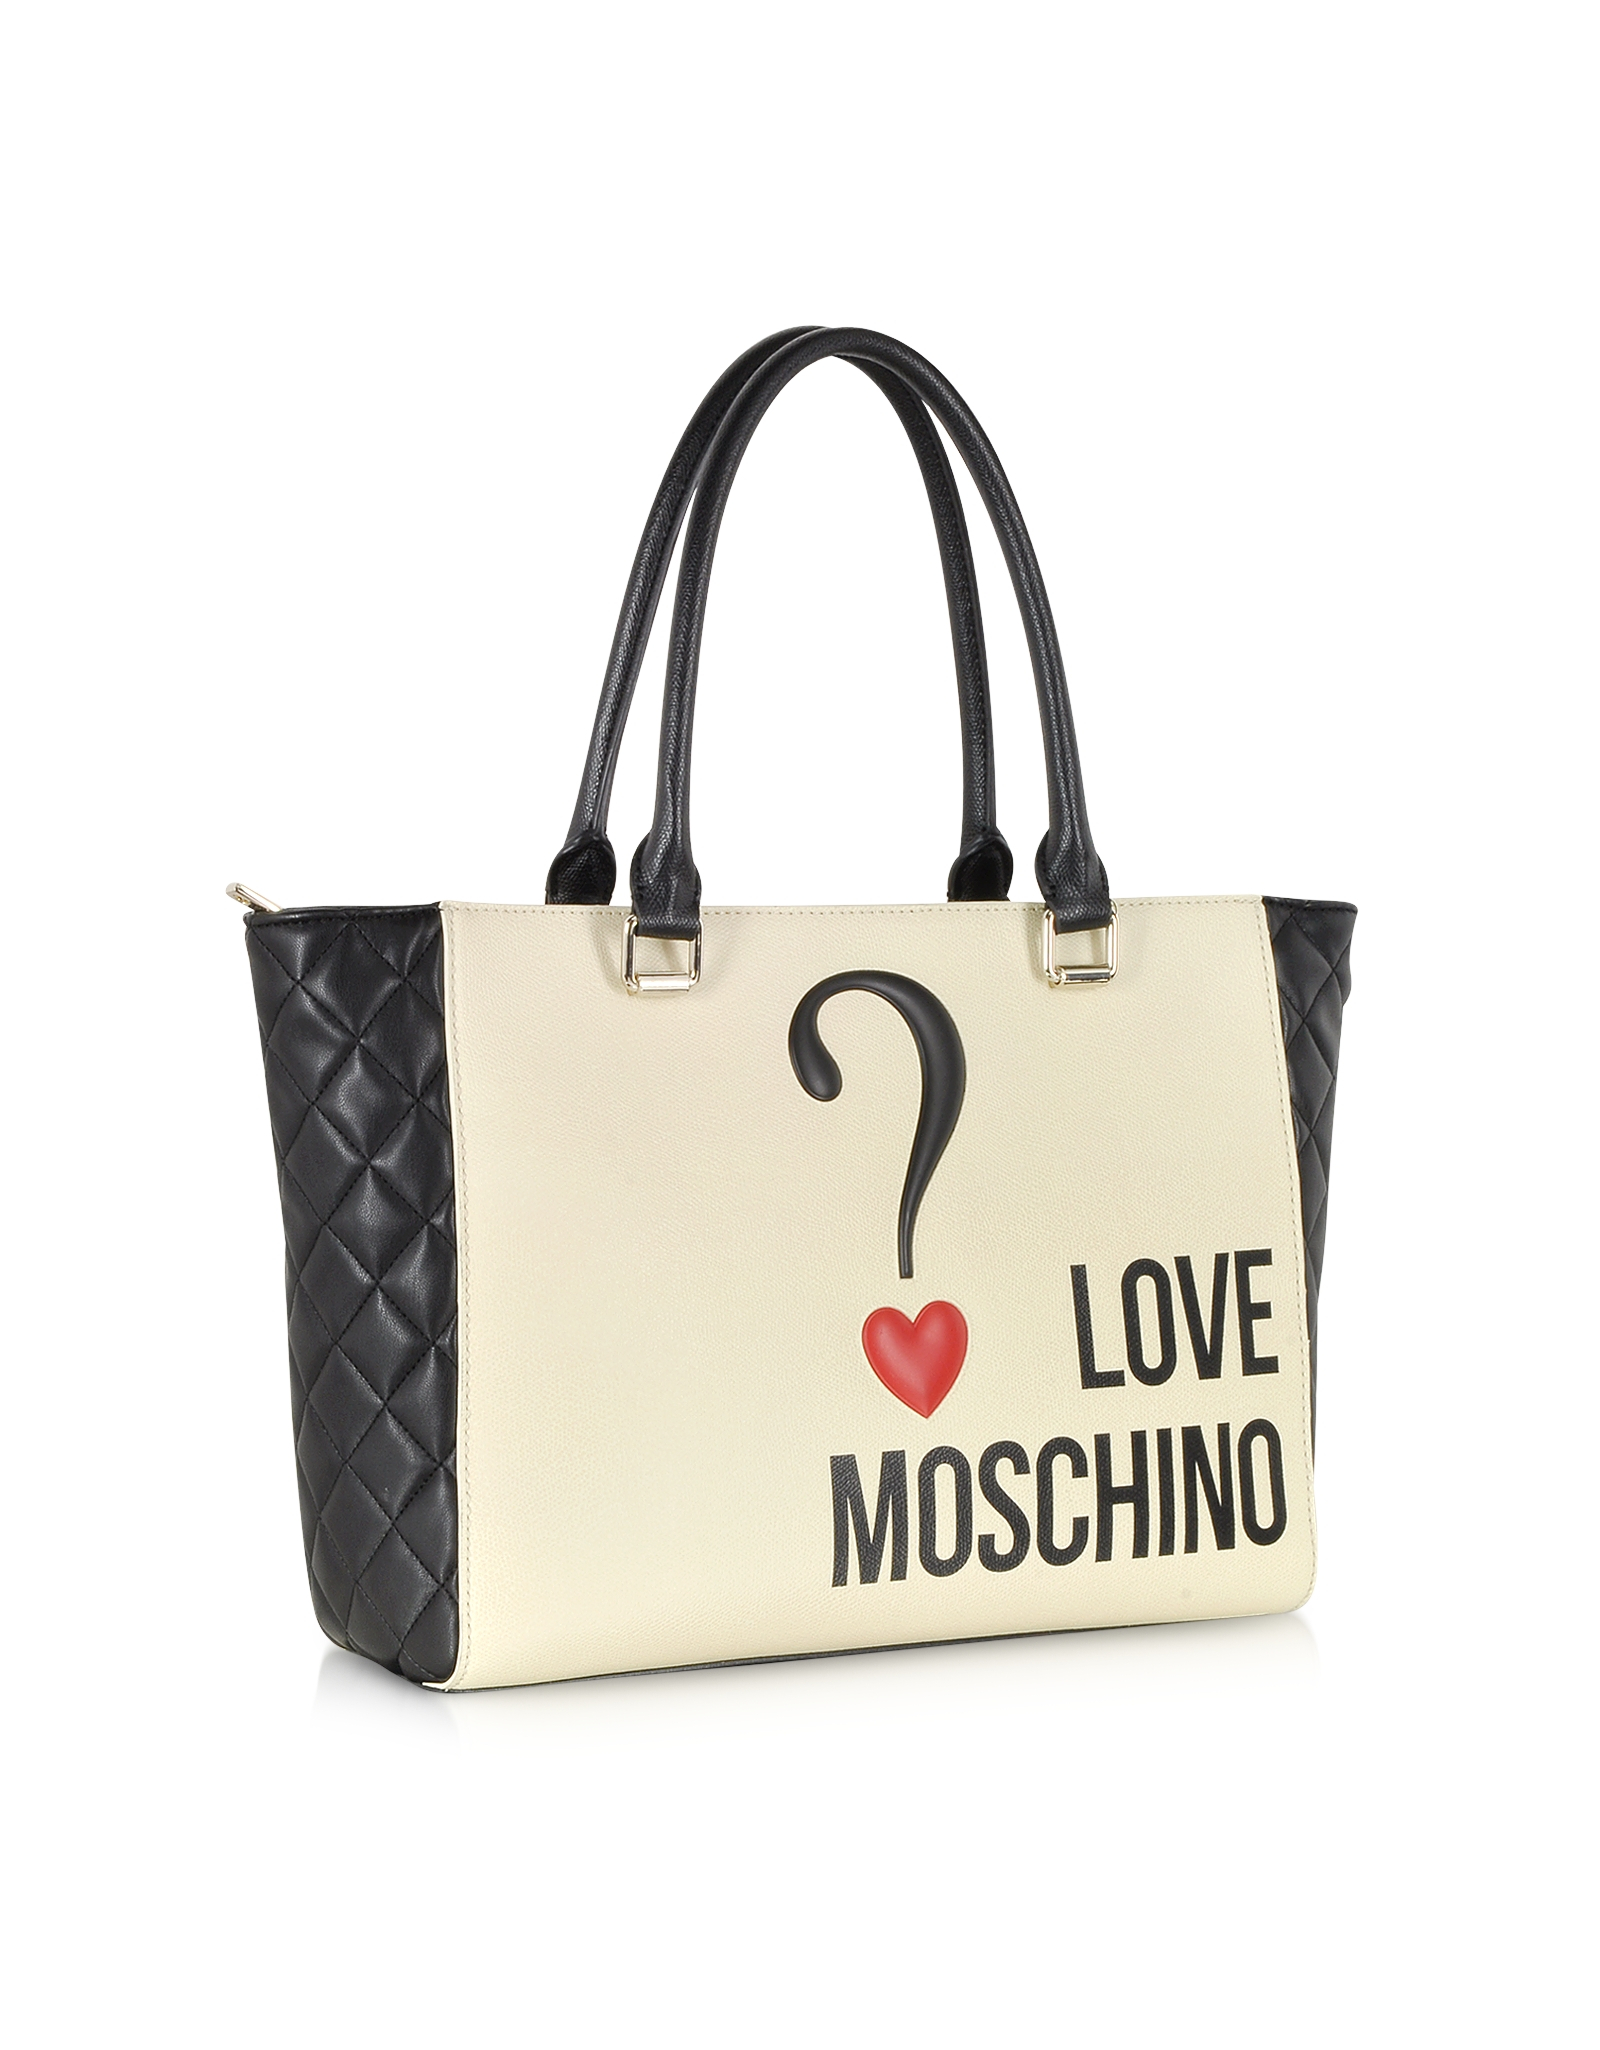 lyst moschino love color block eco leather shopper tote in natural. Black Bedroom Furniture Sets. Home Design Ideas